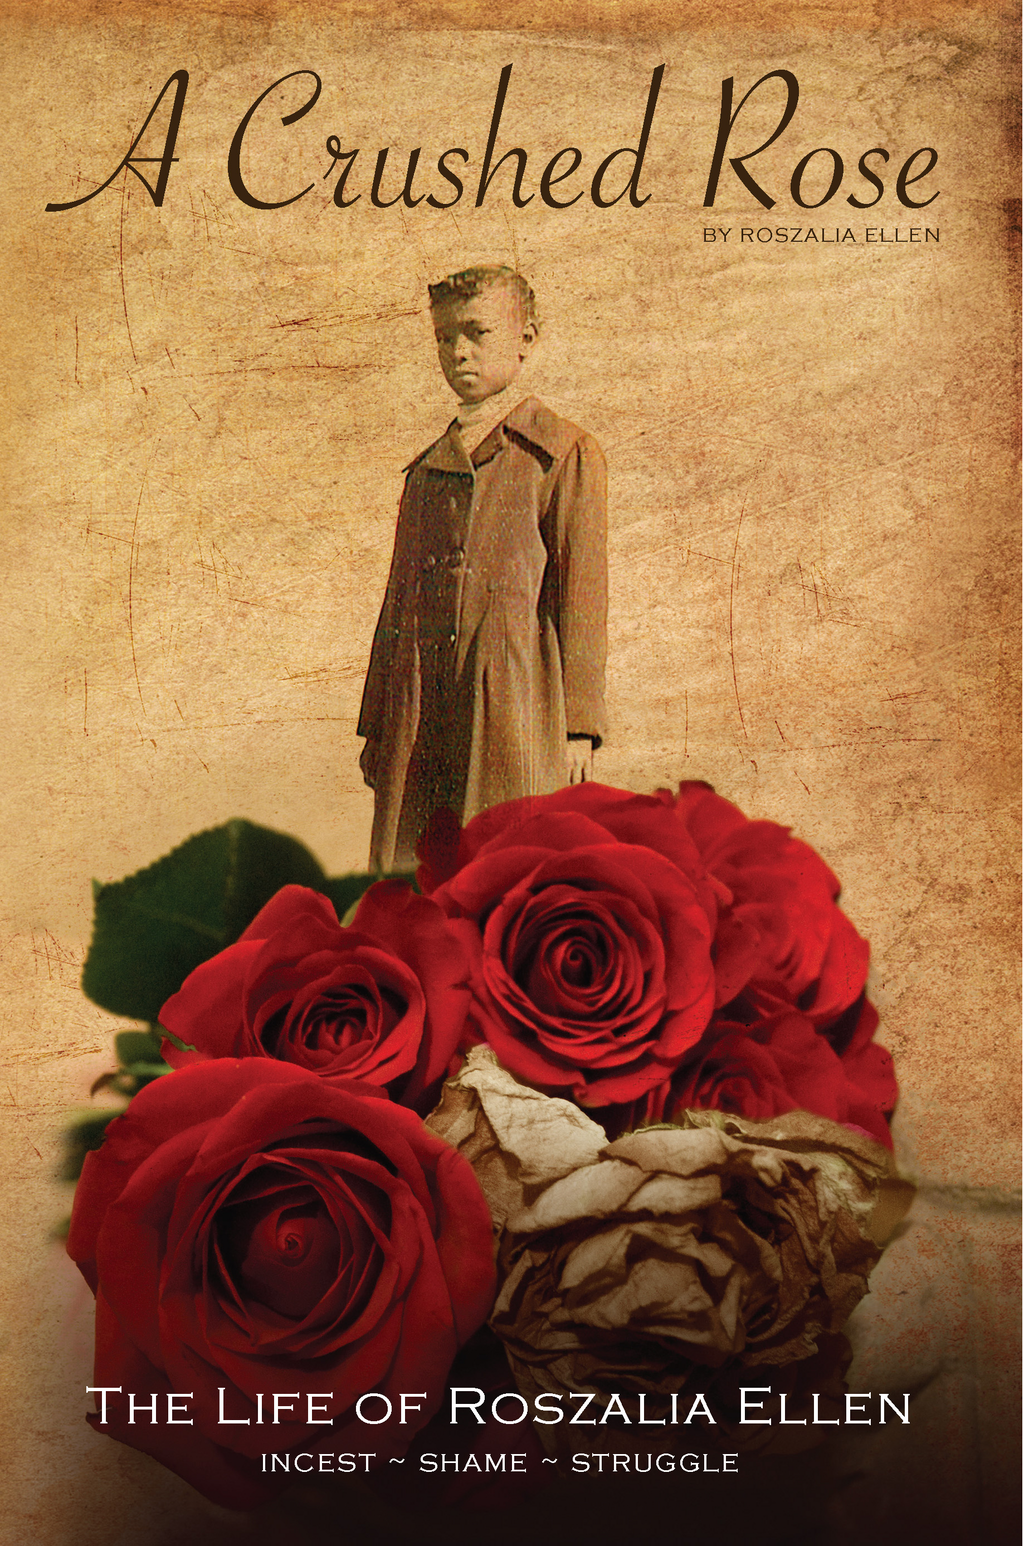 A CRUSHED ROSE: The Life of Roszalia Ellen